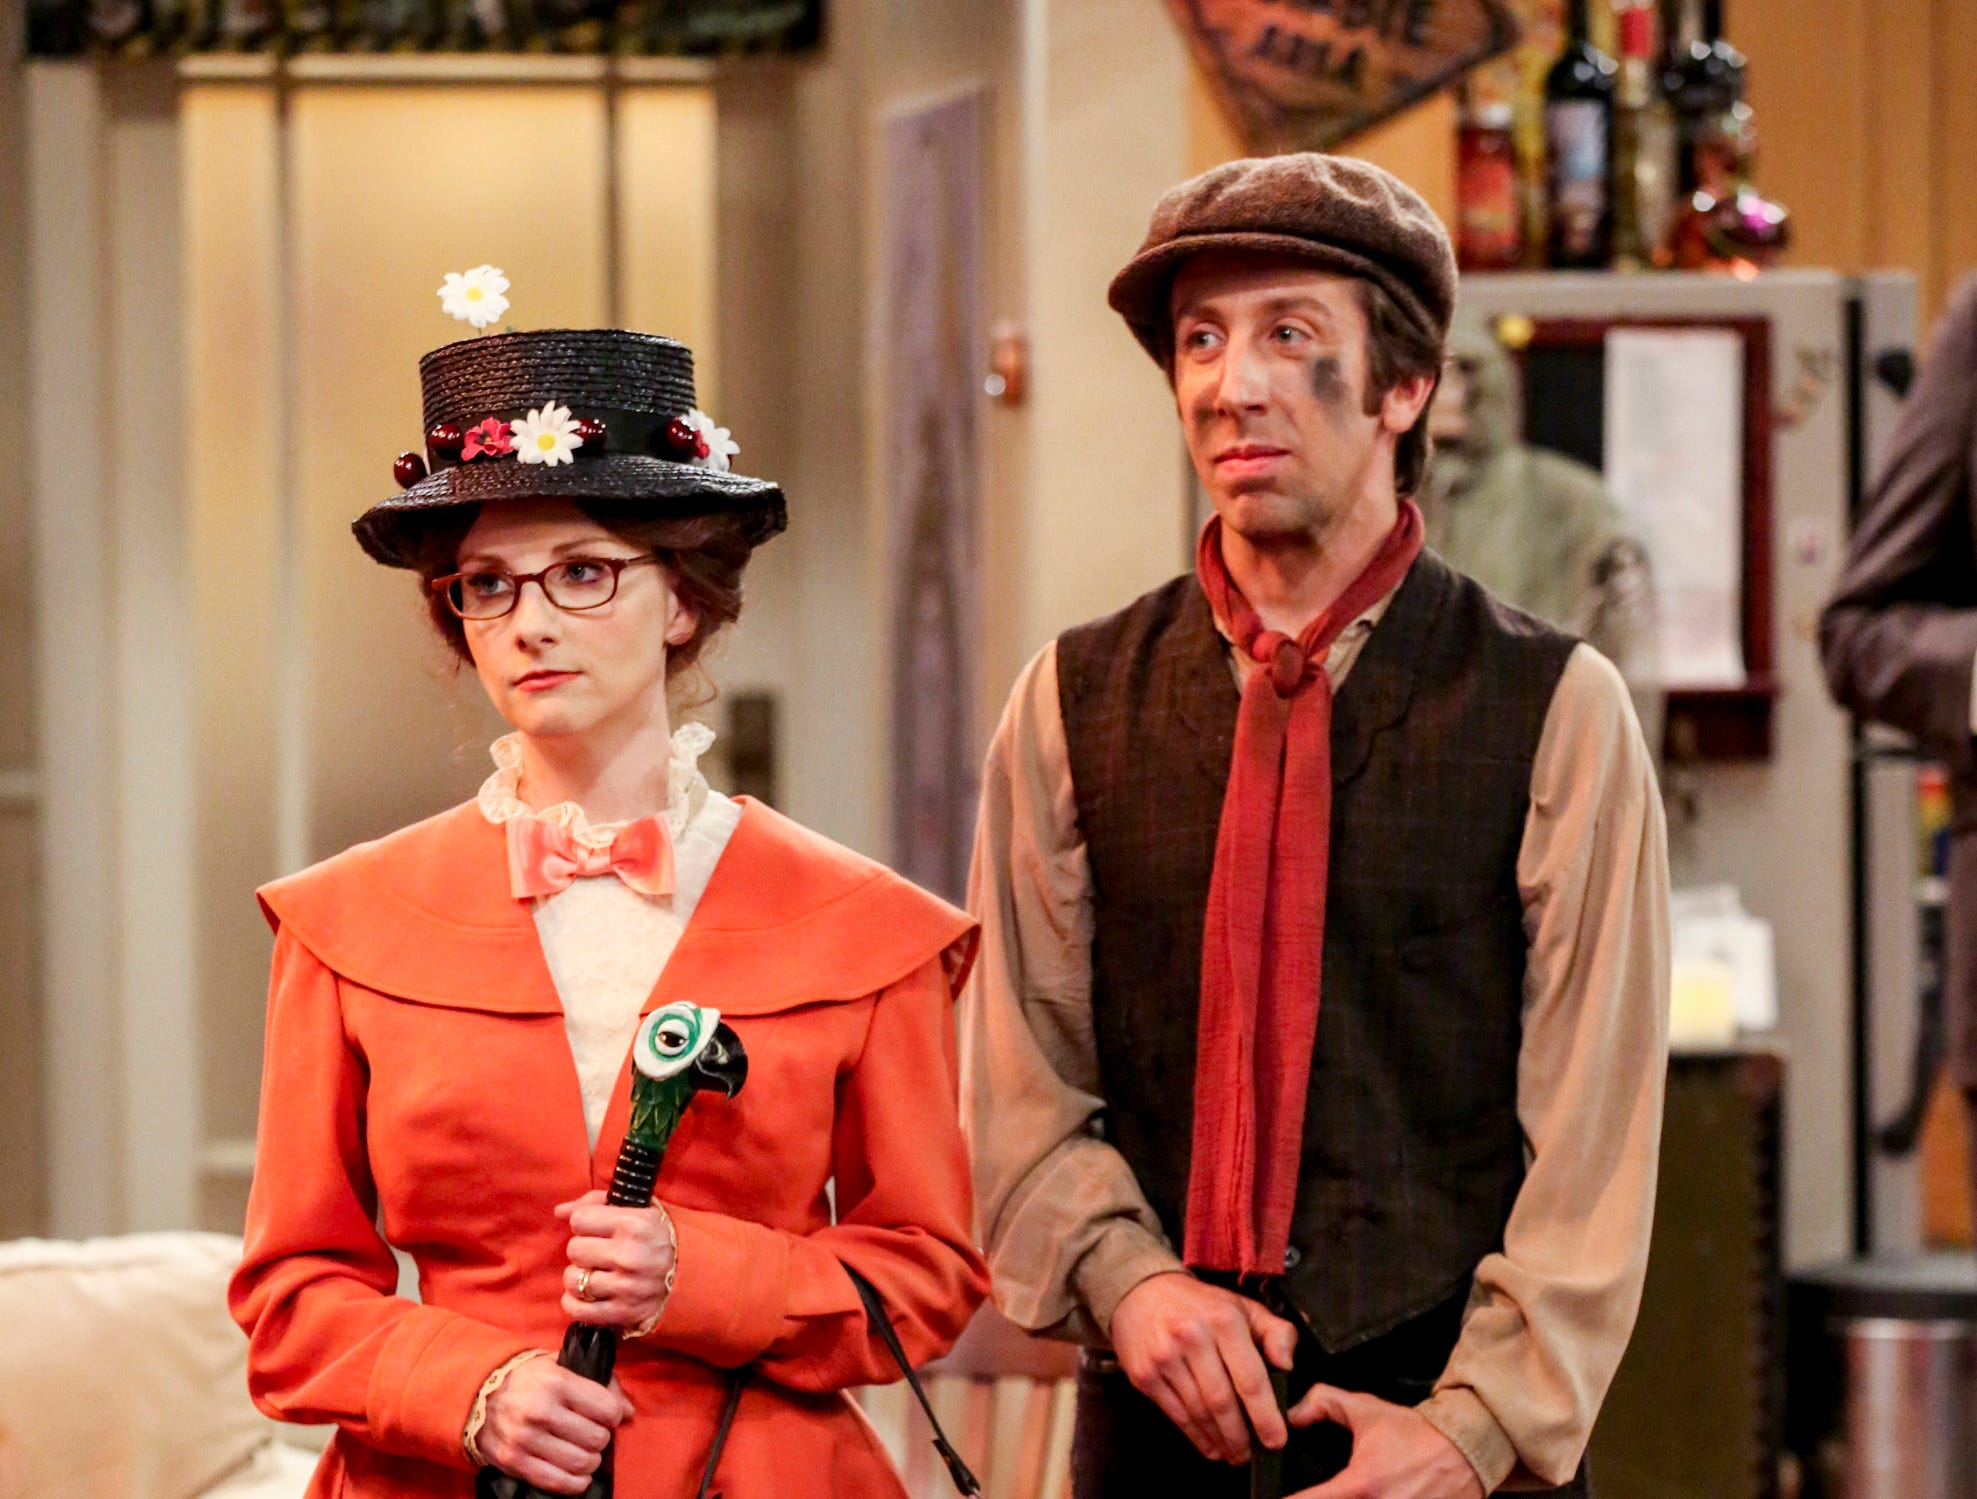 Bernadette (Melissa Rauch) and Howard Wolowitz (Simon Helberg) go even more retro dressing as Mary Poppins and her chimney-sweeping friend, Bert, for Leonard and Penny's party.